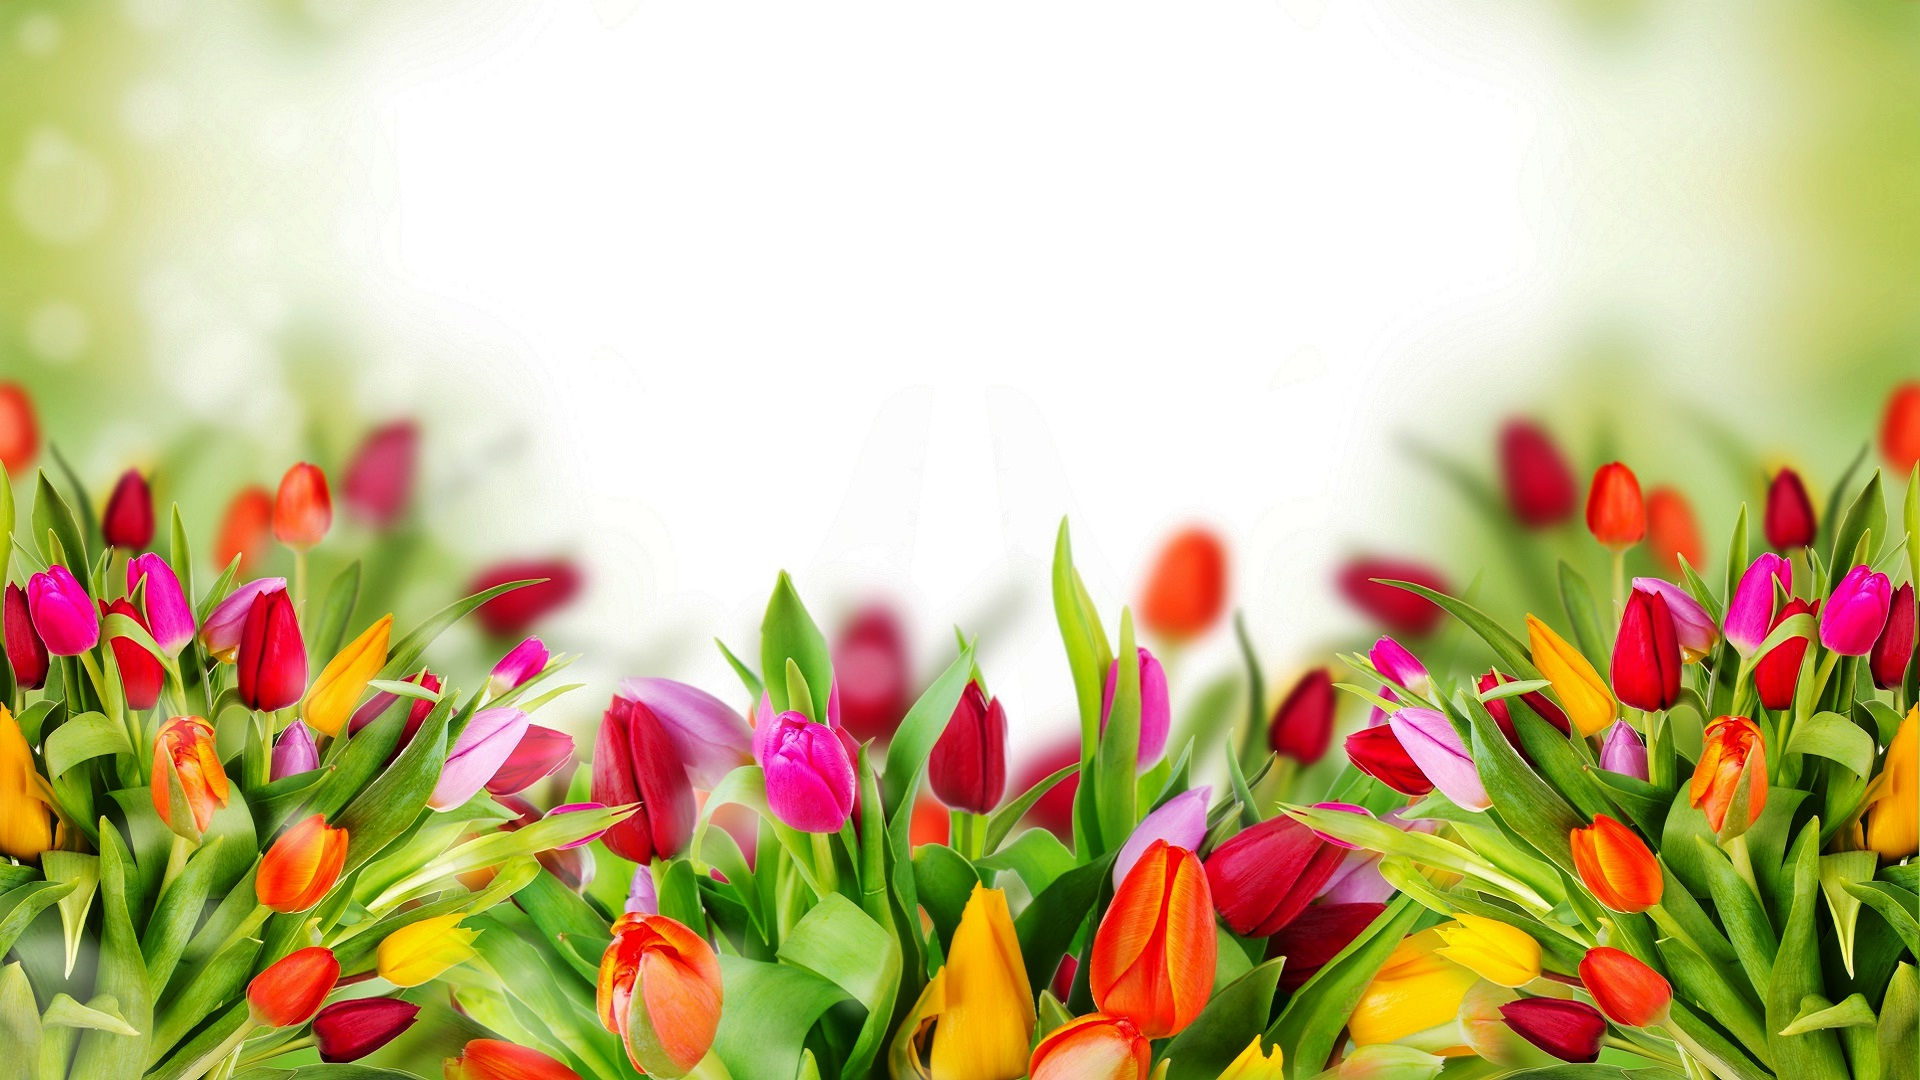 Free Colorful Flower Wallpaper Downloads: 1920x1080px Background Flowers Images